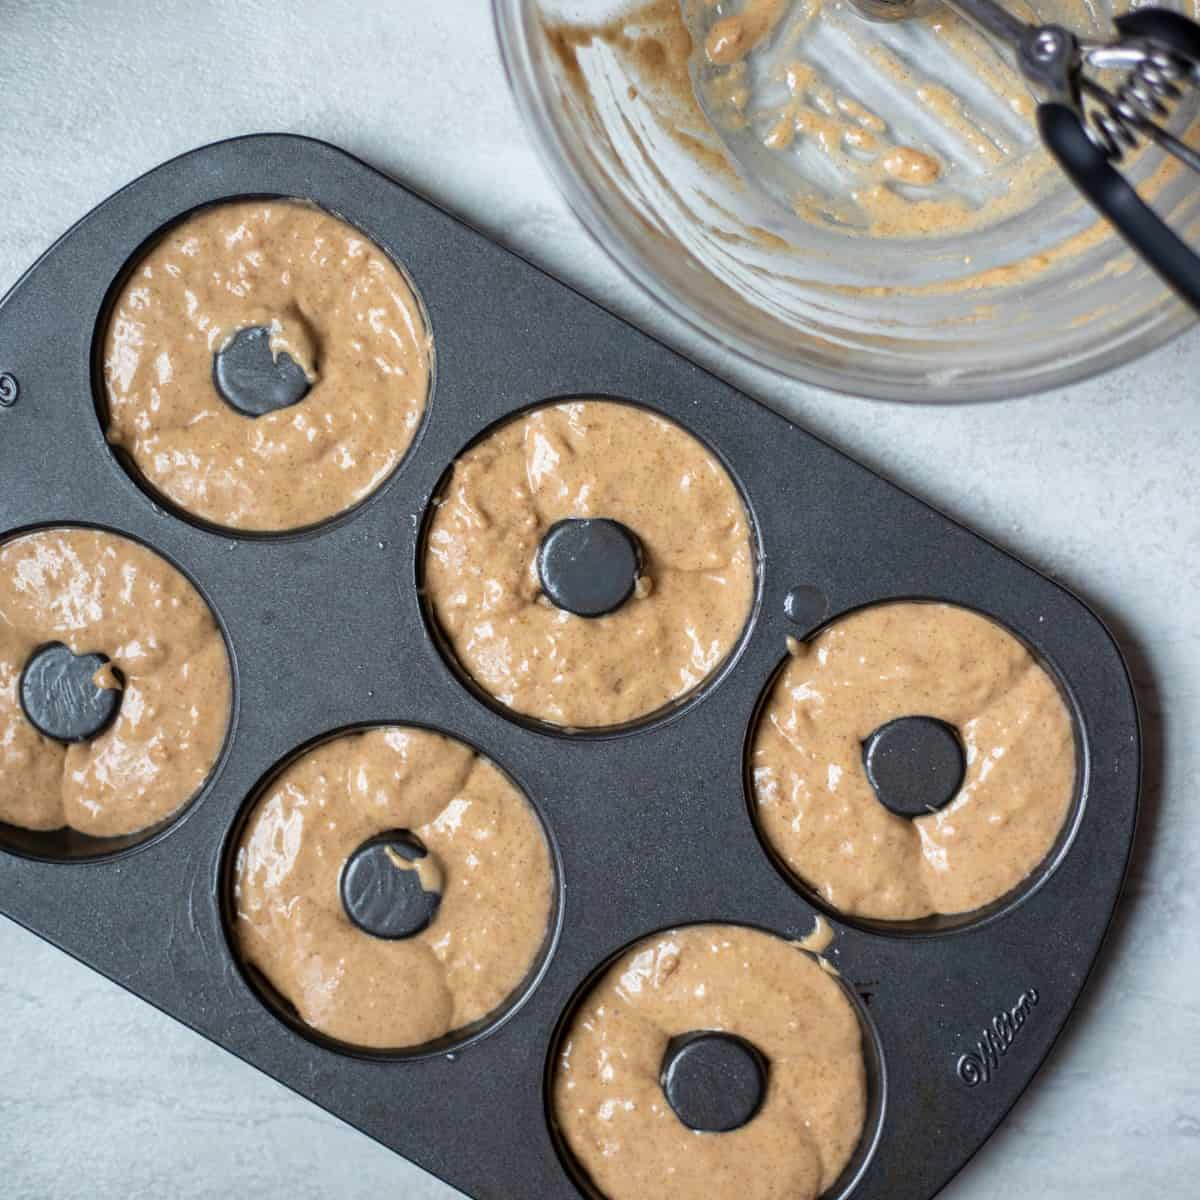 Cinnamon donut batter portioned out into a donut pan.